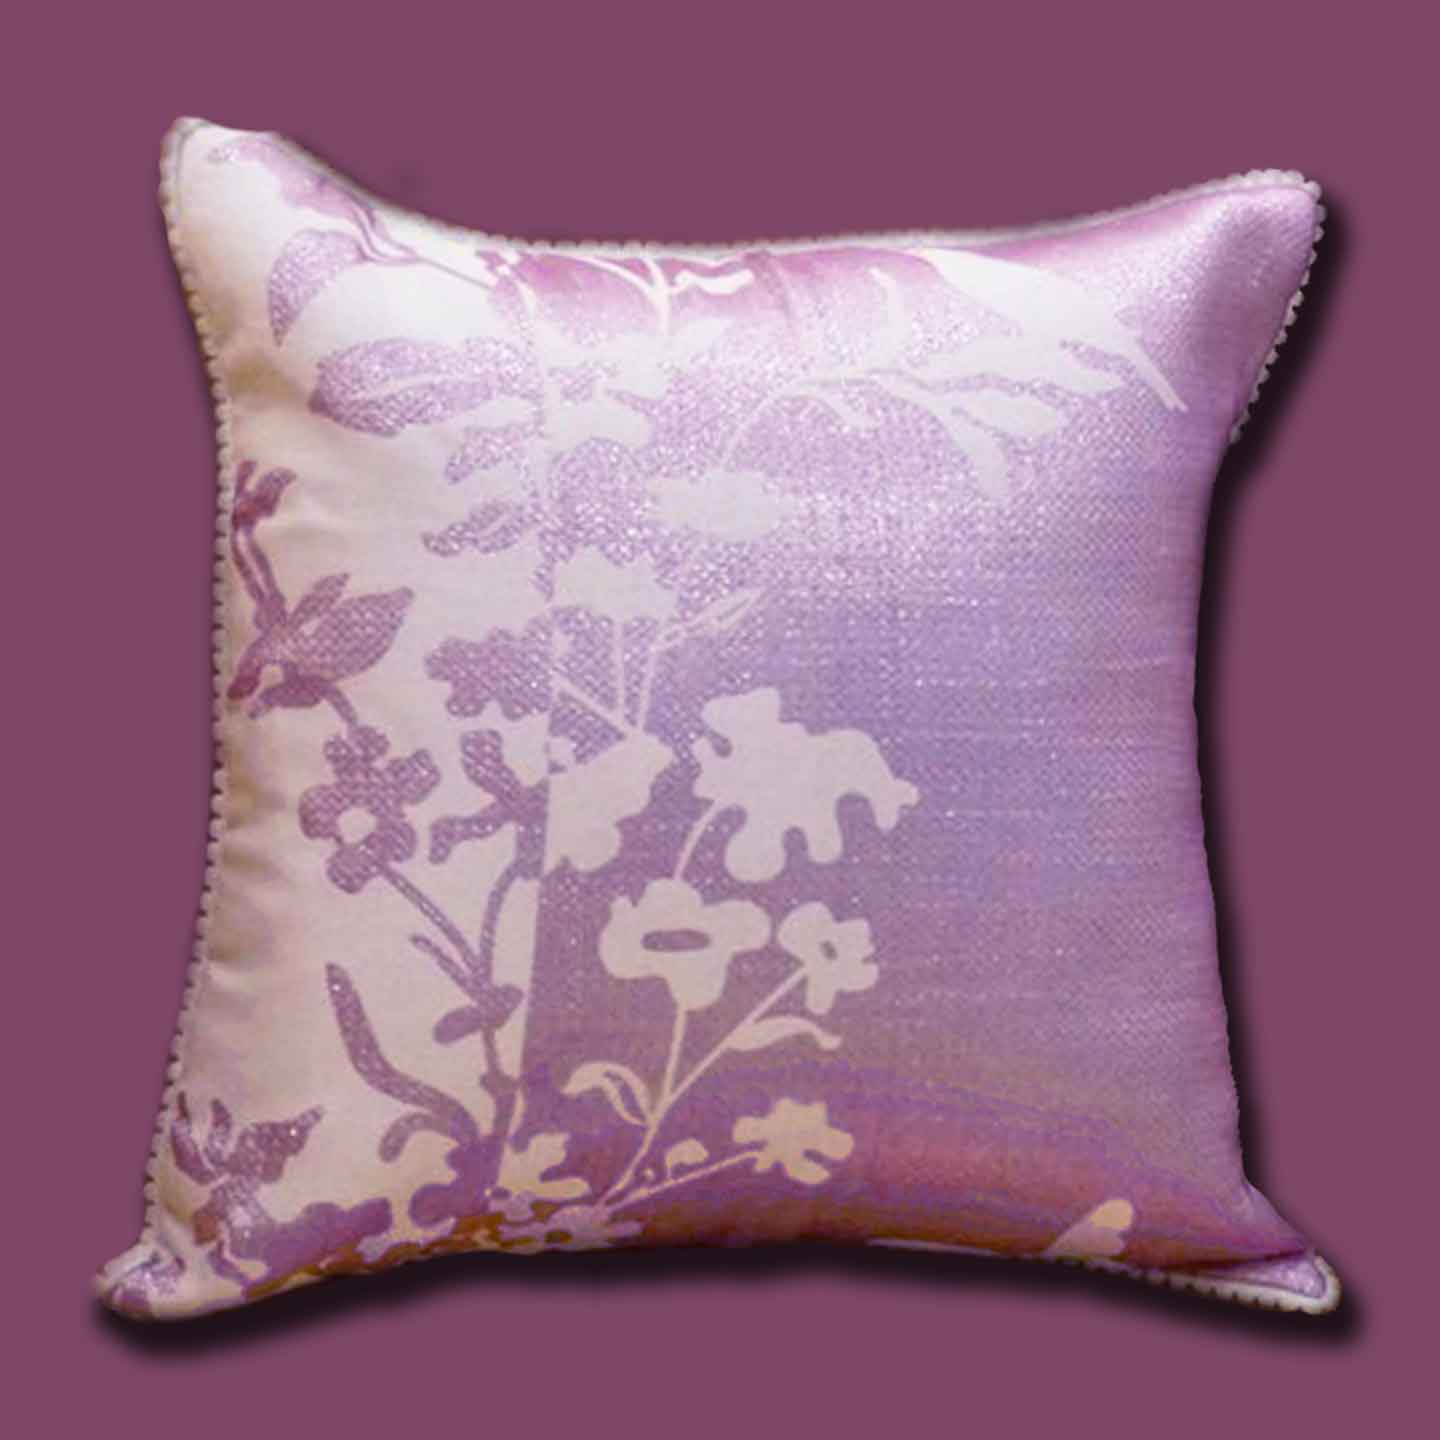 Buy Luxurious Purple and Silver Cushions by Caffe Arch Design Studio